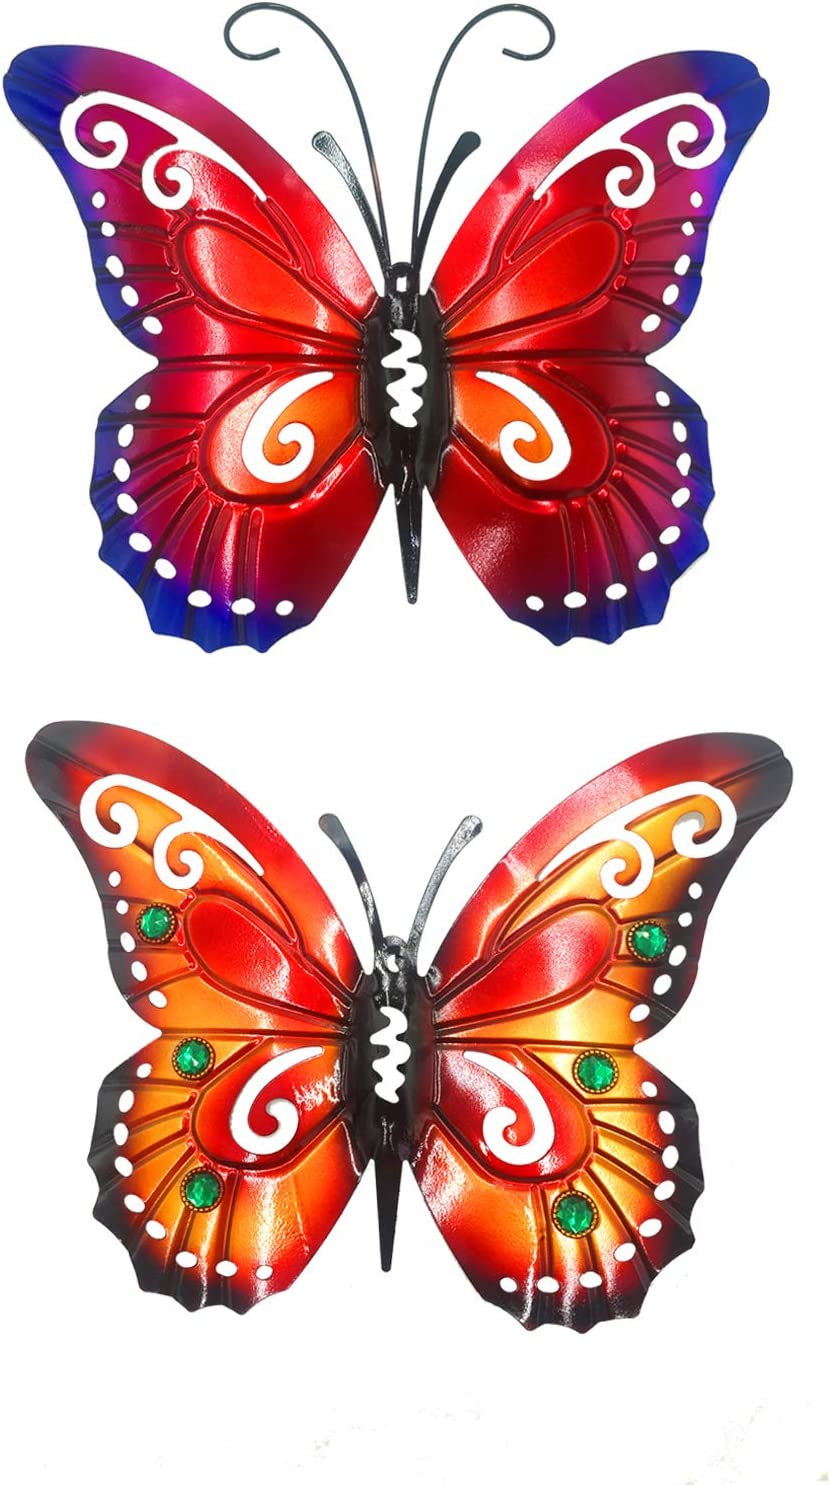 Set of 2 Metal Butterfly Wall Decor Outdoor Wall Art, Metal Wall Art Outdoor Wall Decor,Large Metal Wall Art Decor for Home Garden Patio Yard Fence Porch Tree(Orange&Red)